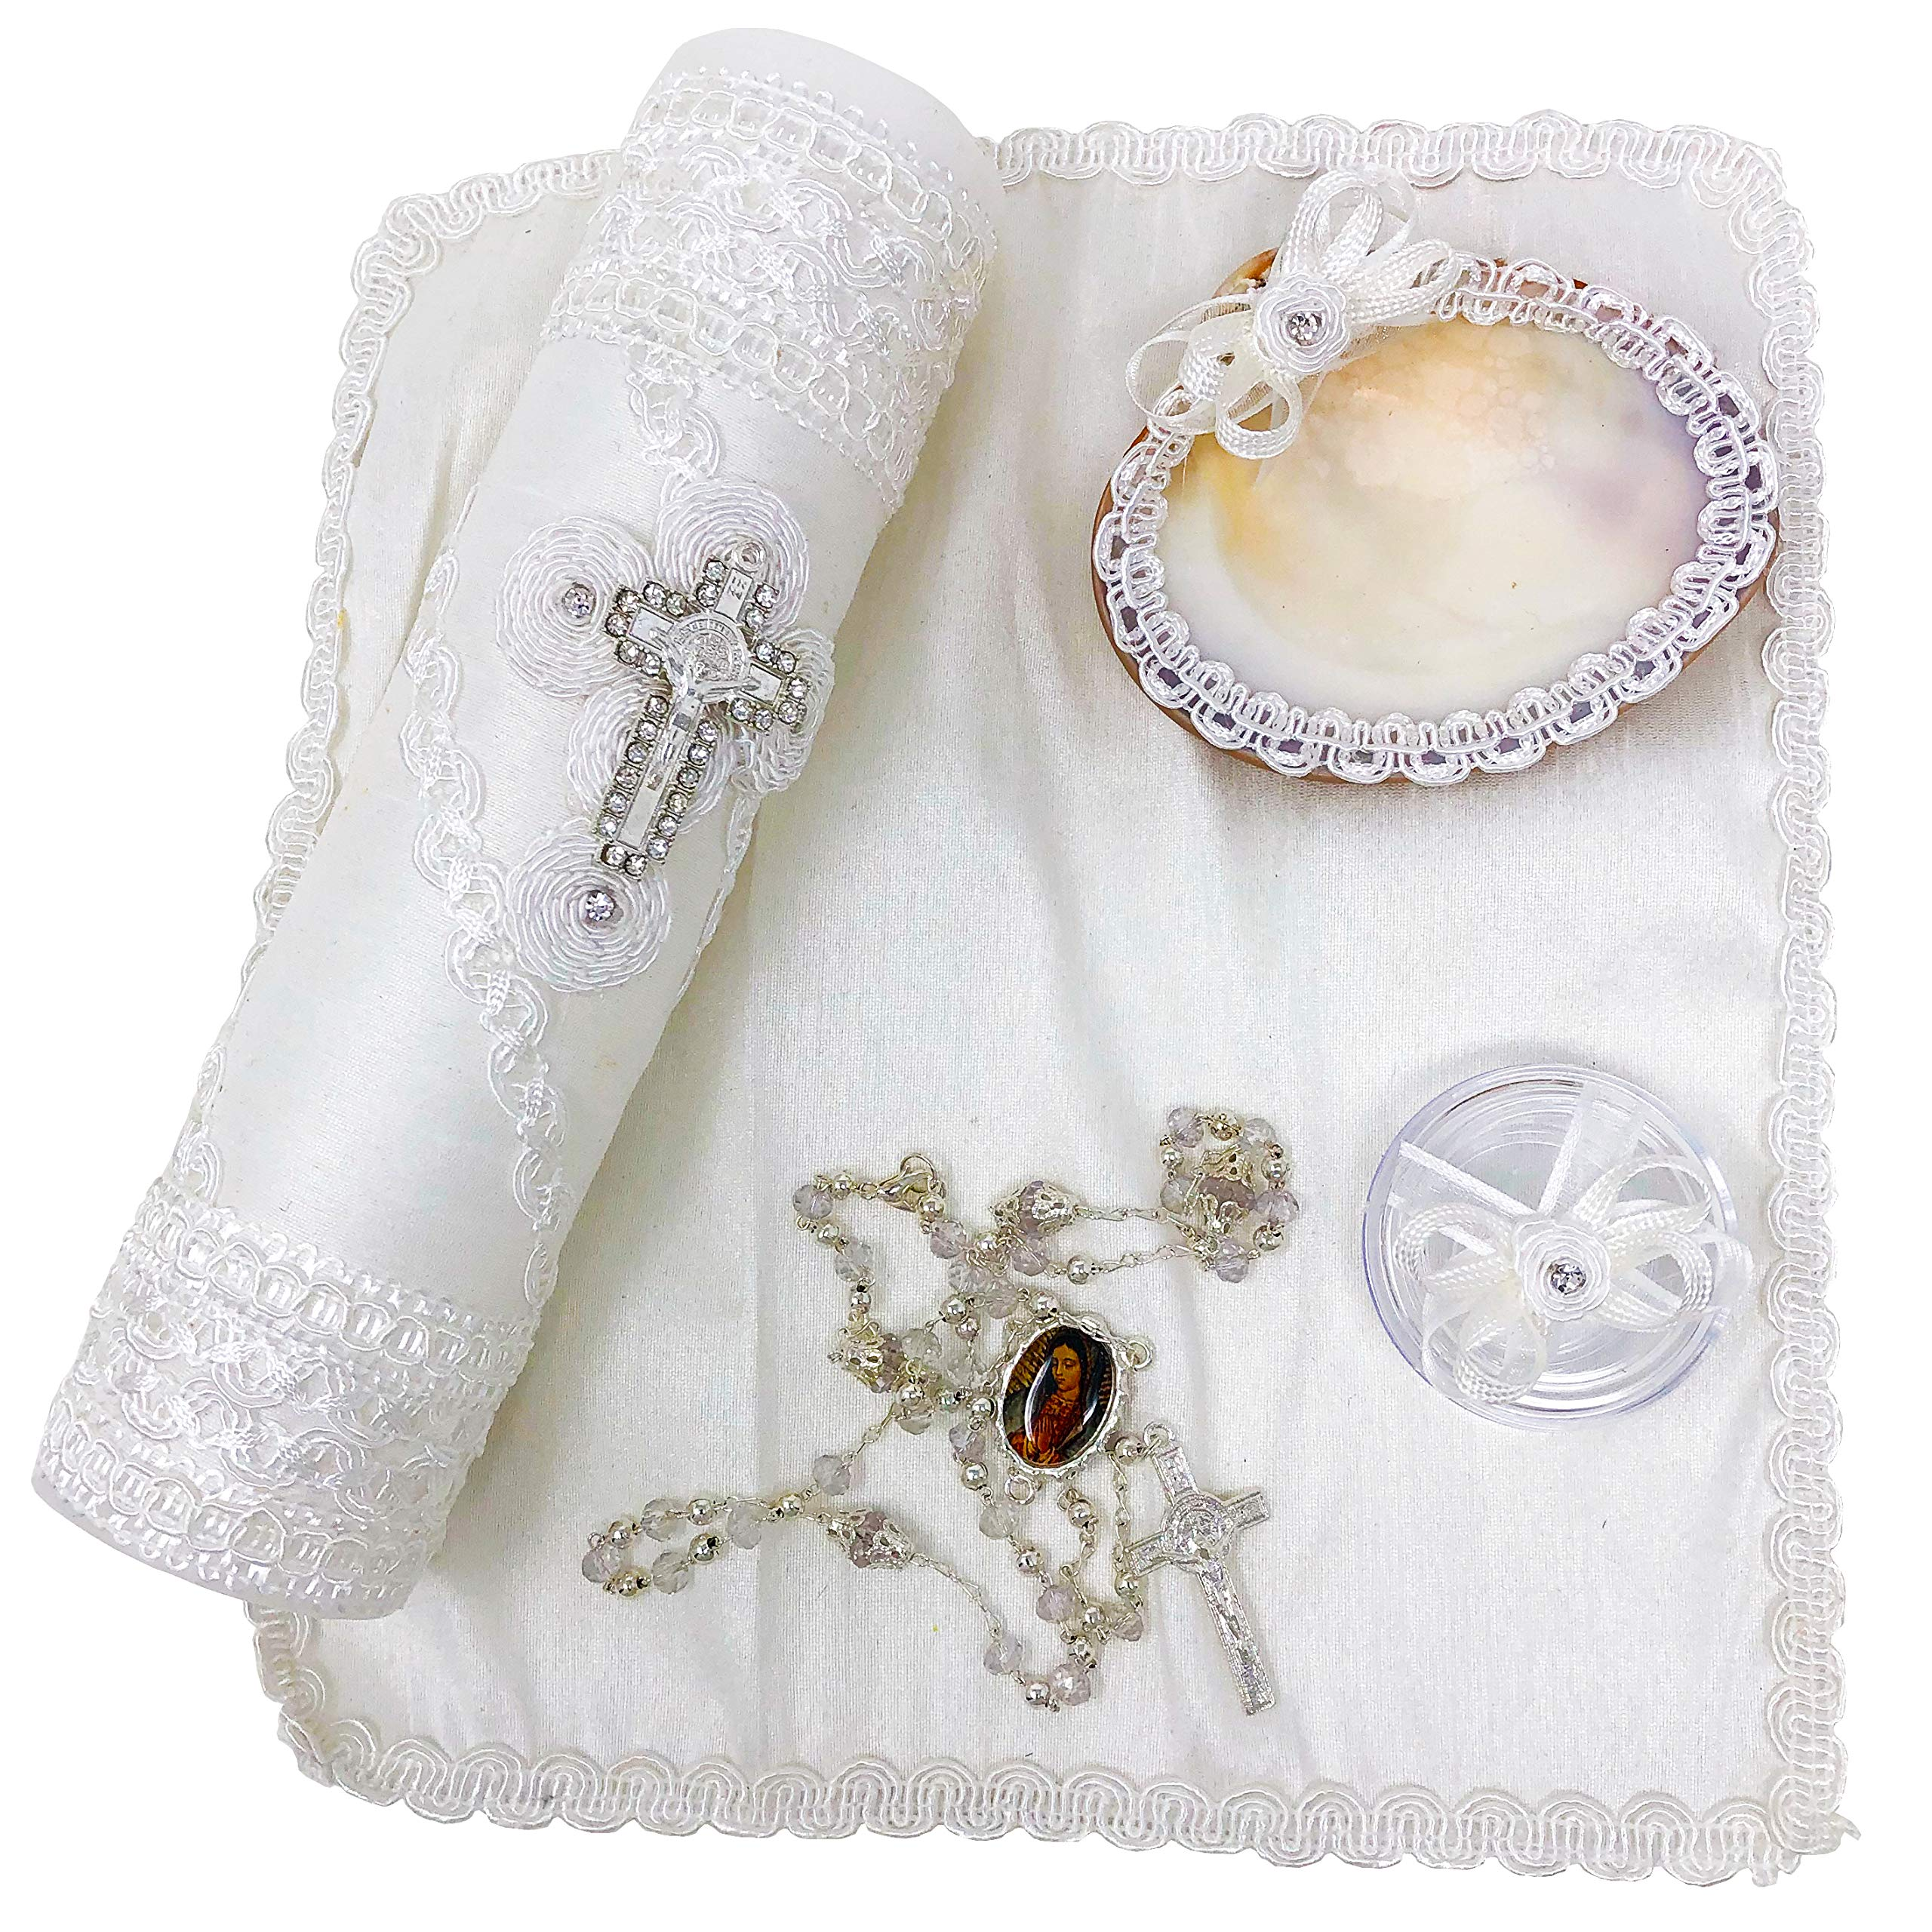 Salve Regina Hand Made Catholic Christening/Baptism Kit - Model 3, White